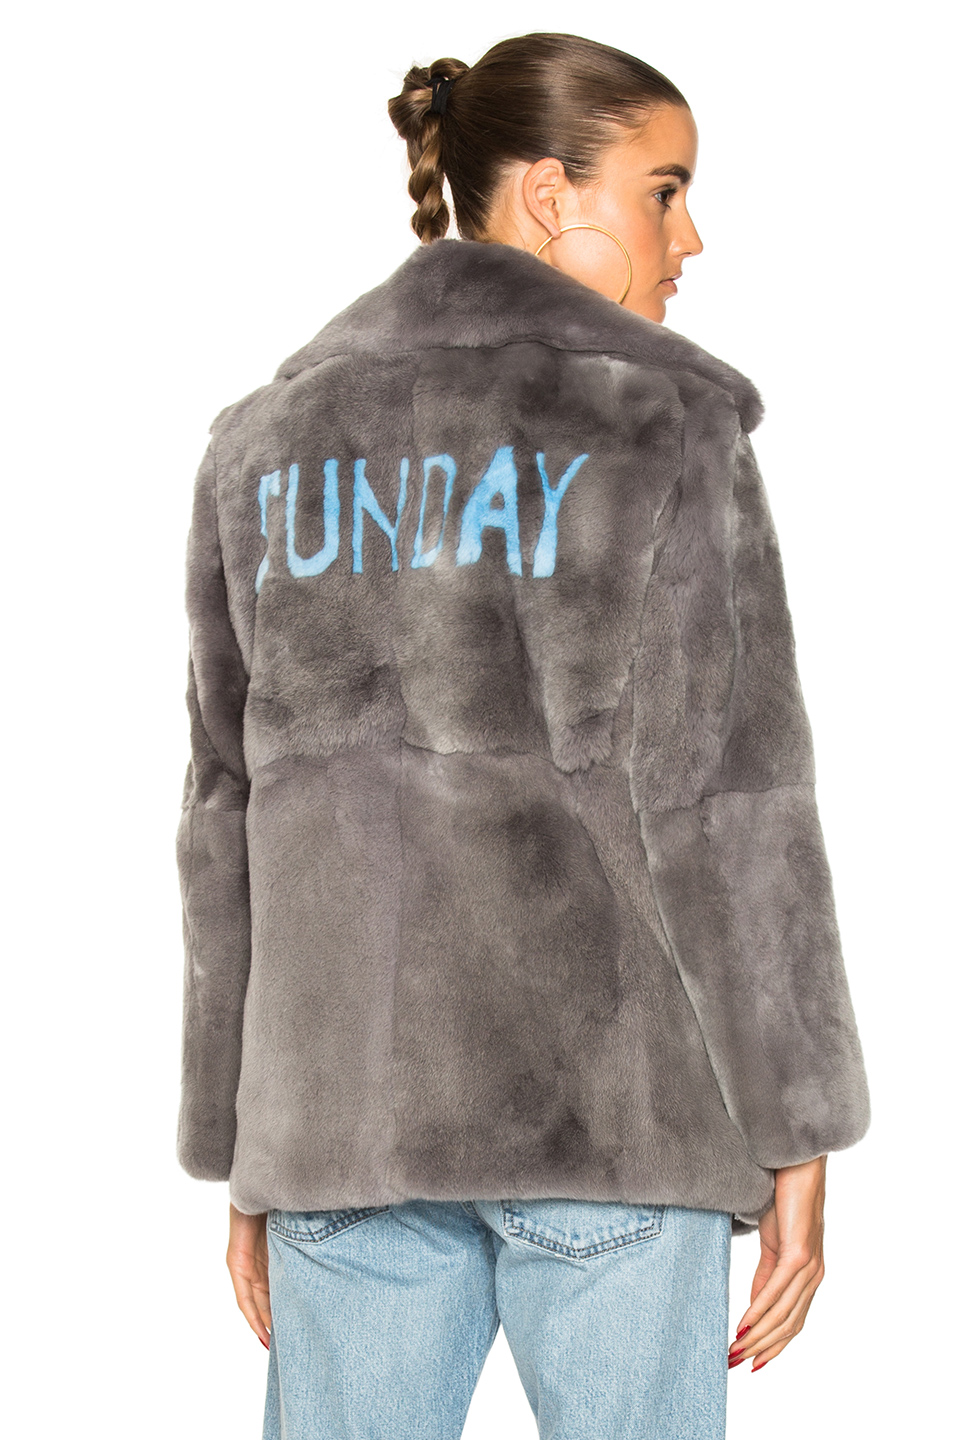 ALBERTA FERRETTI Sunday Rabbit Fur Coat in Gray